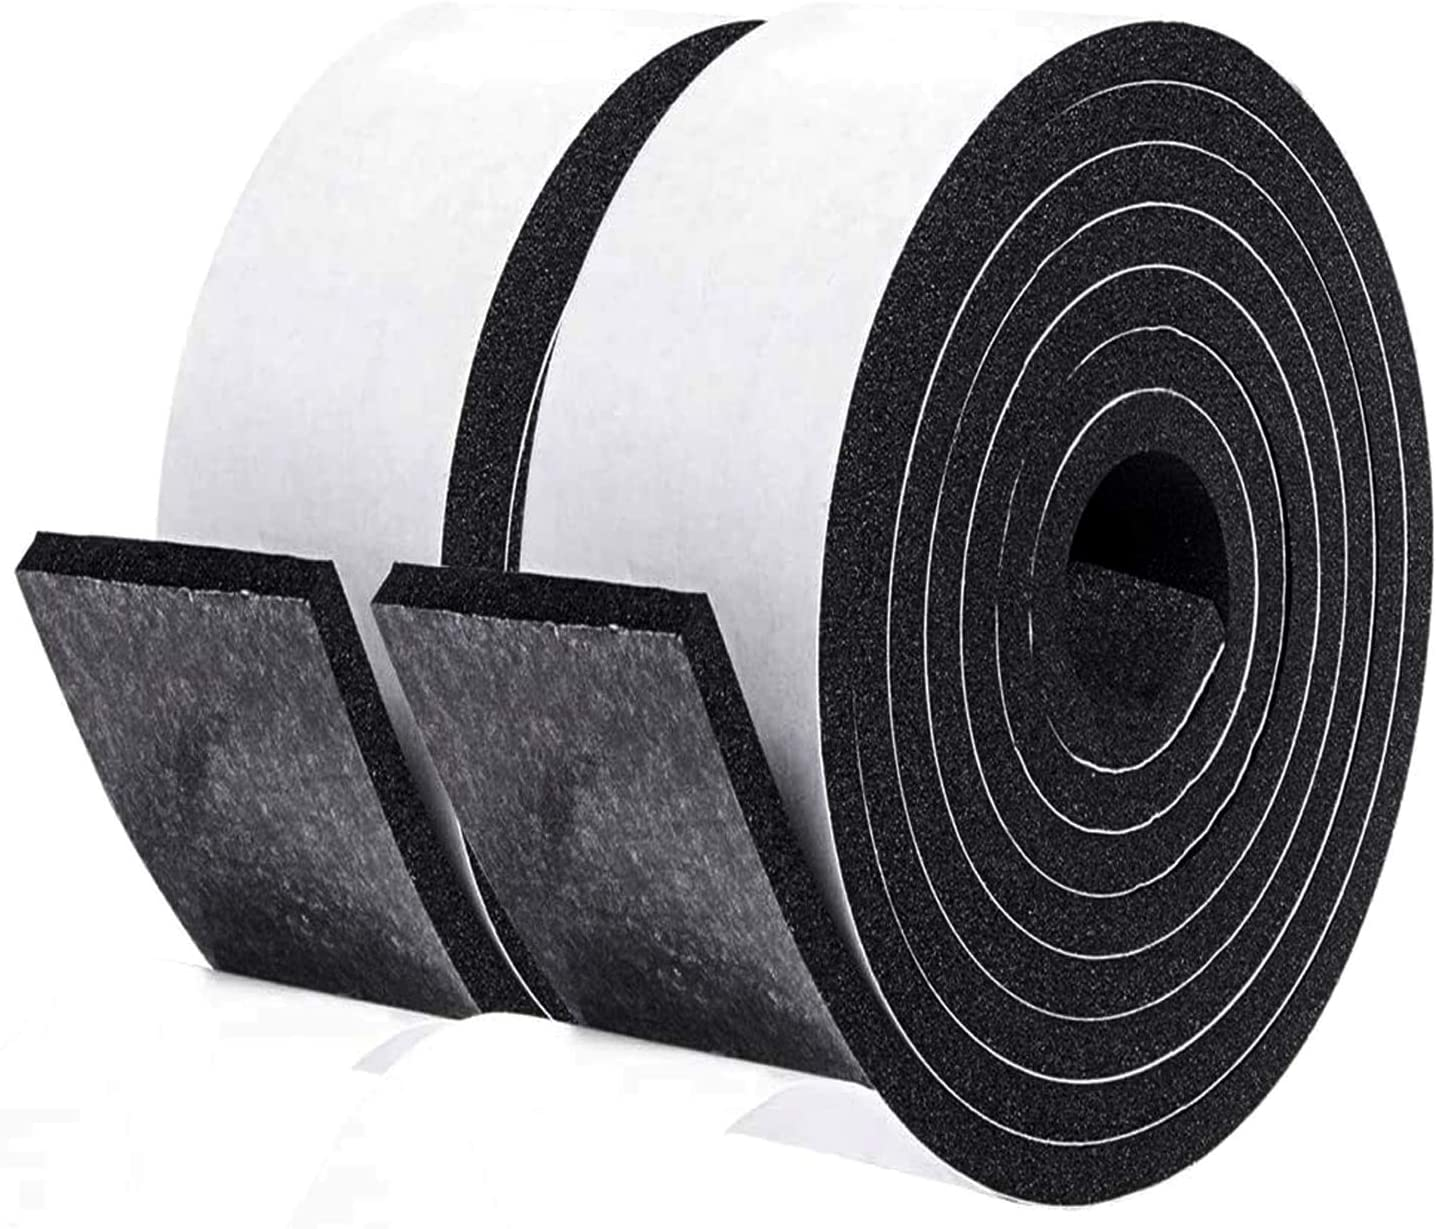 fowong Foam Weather Stripping Tape, 2 Inch Wide X 1/4 Inch Thick Window Insulation Soundproofing Adhesive Foam Tape Foam Seal Strip Closed Cell Foam Tape (2 Rolls with Total 13 Feet Long)